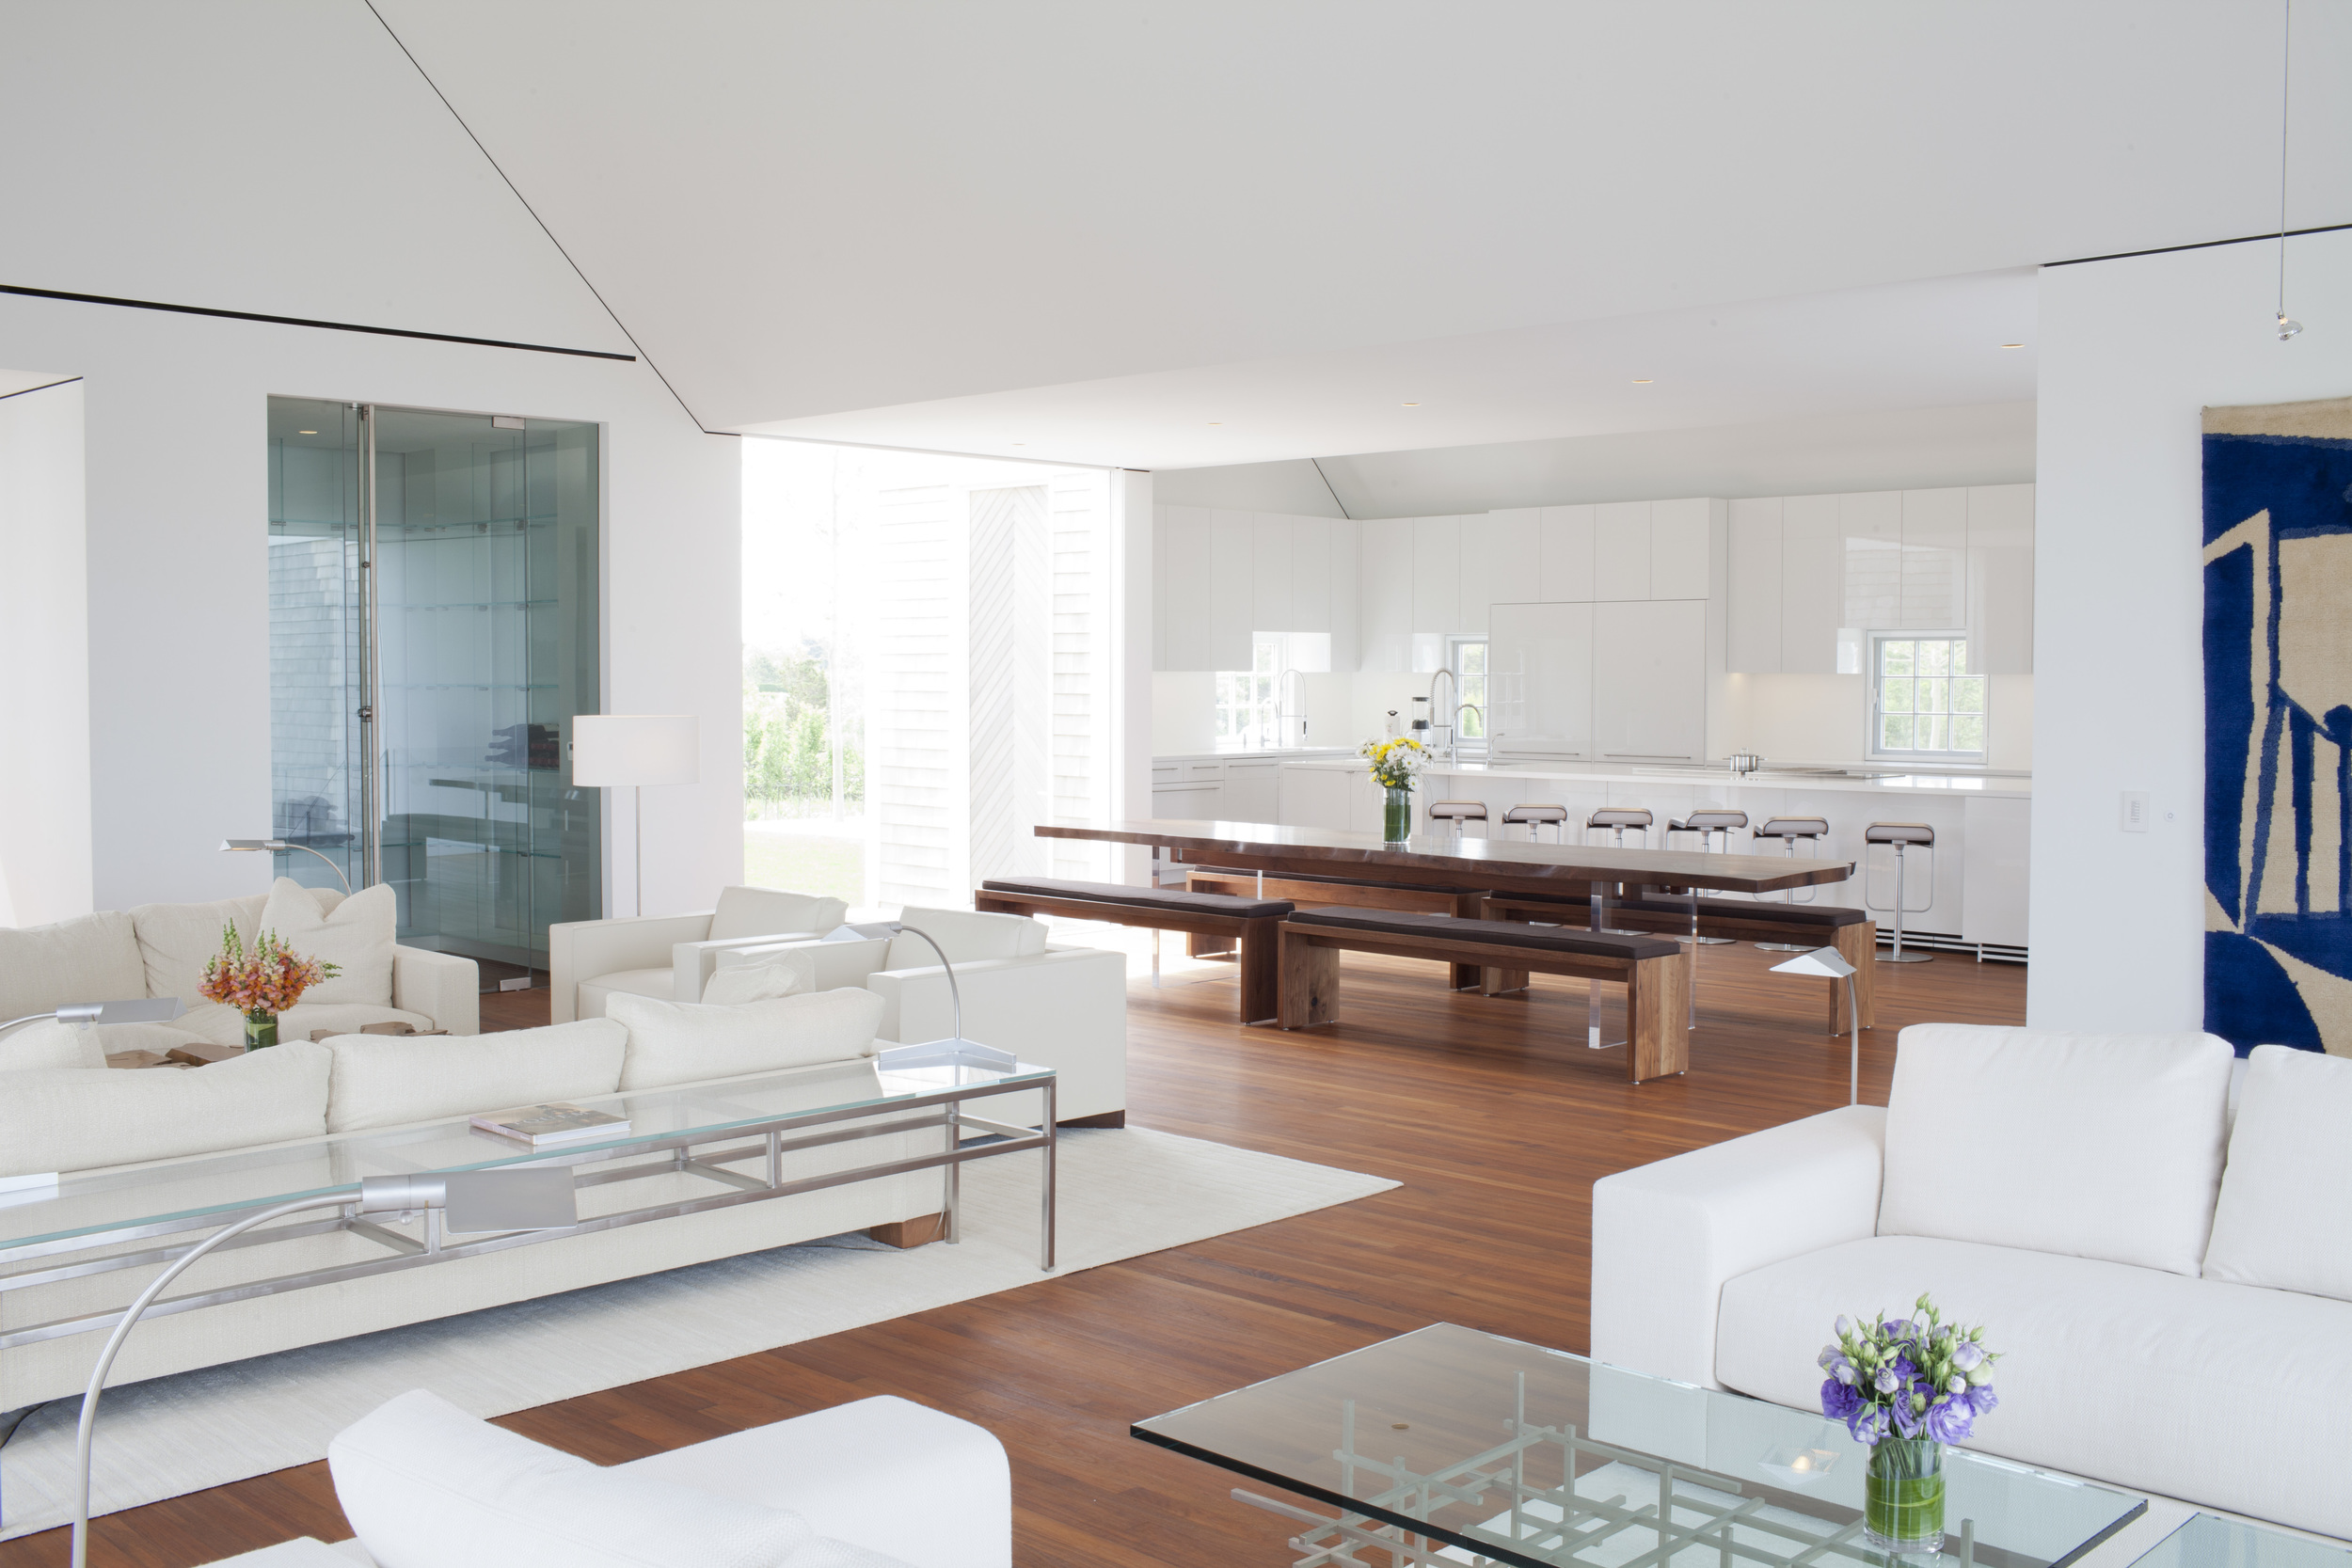 Living rm and dining in the kitchen is mixed together.